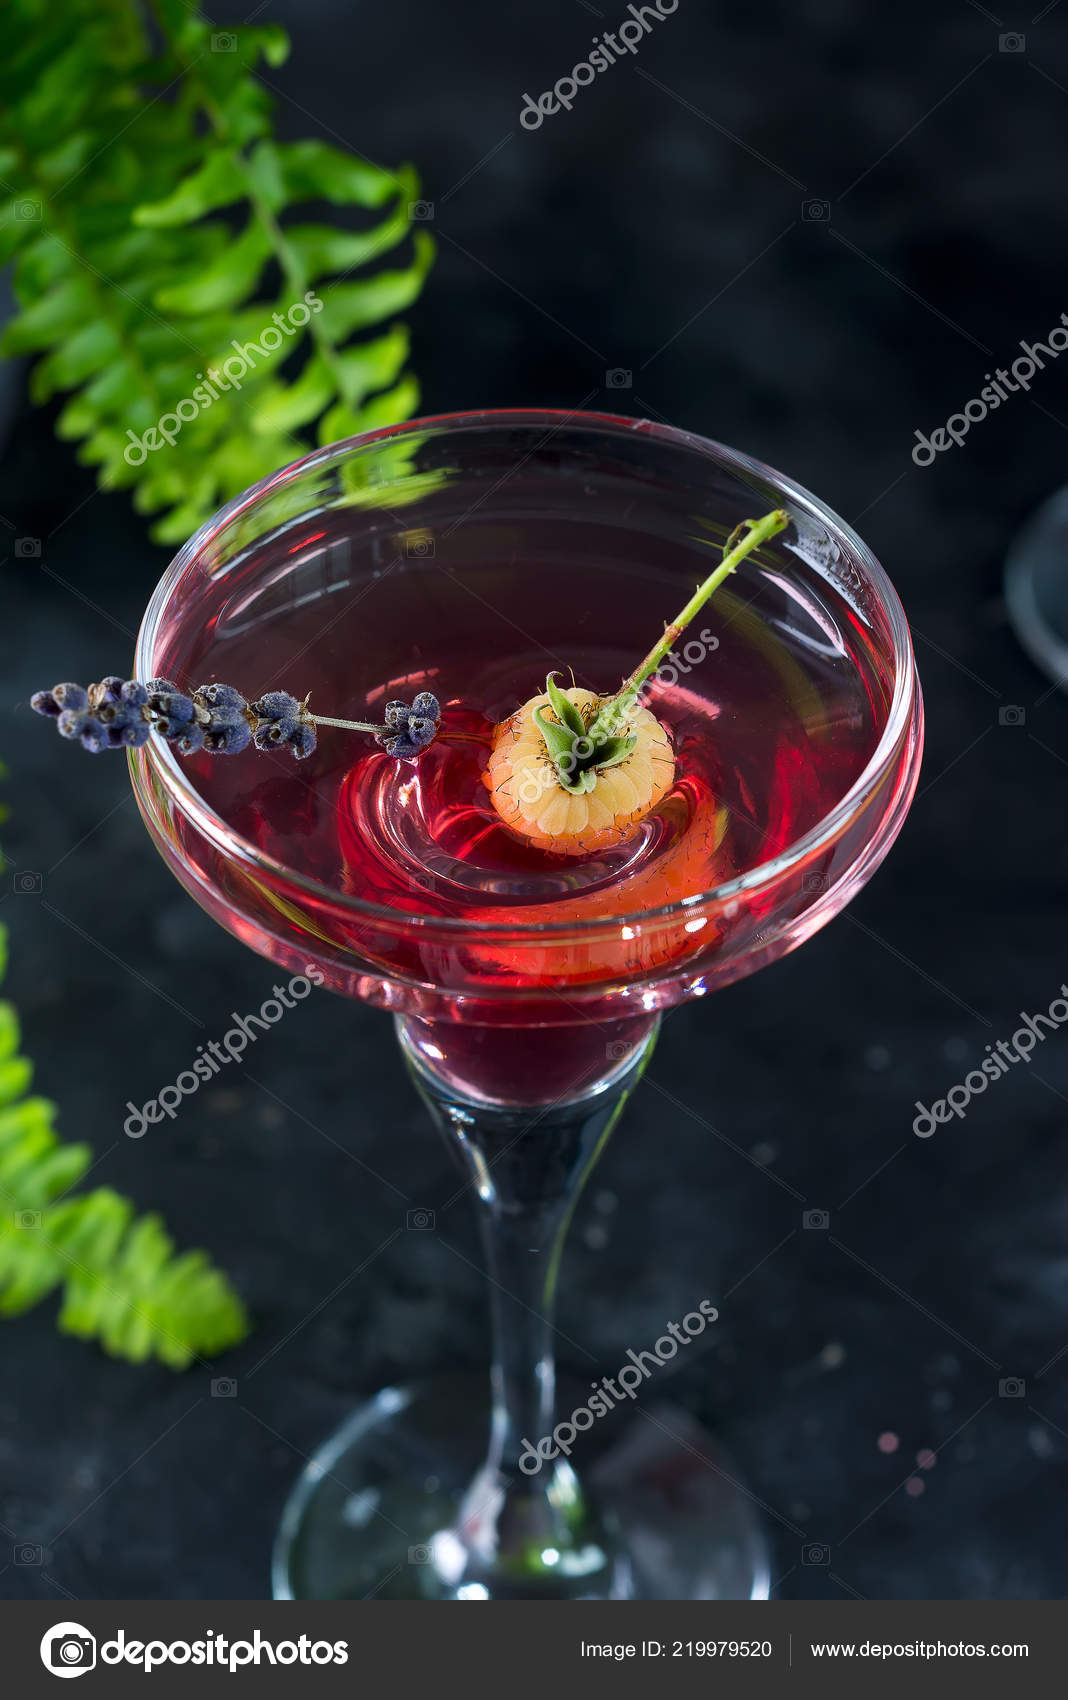 Delicious Negroni Cocktails Campari Gin Vermouth Berries